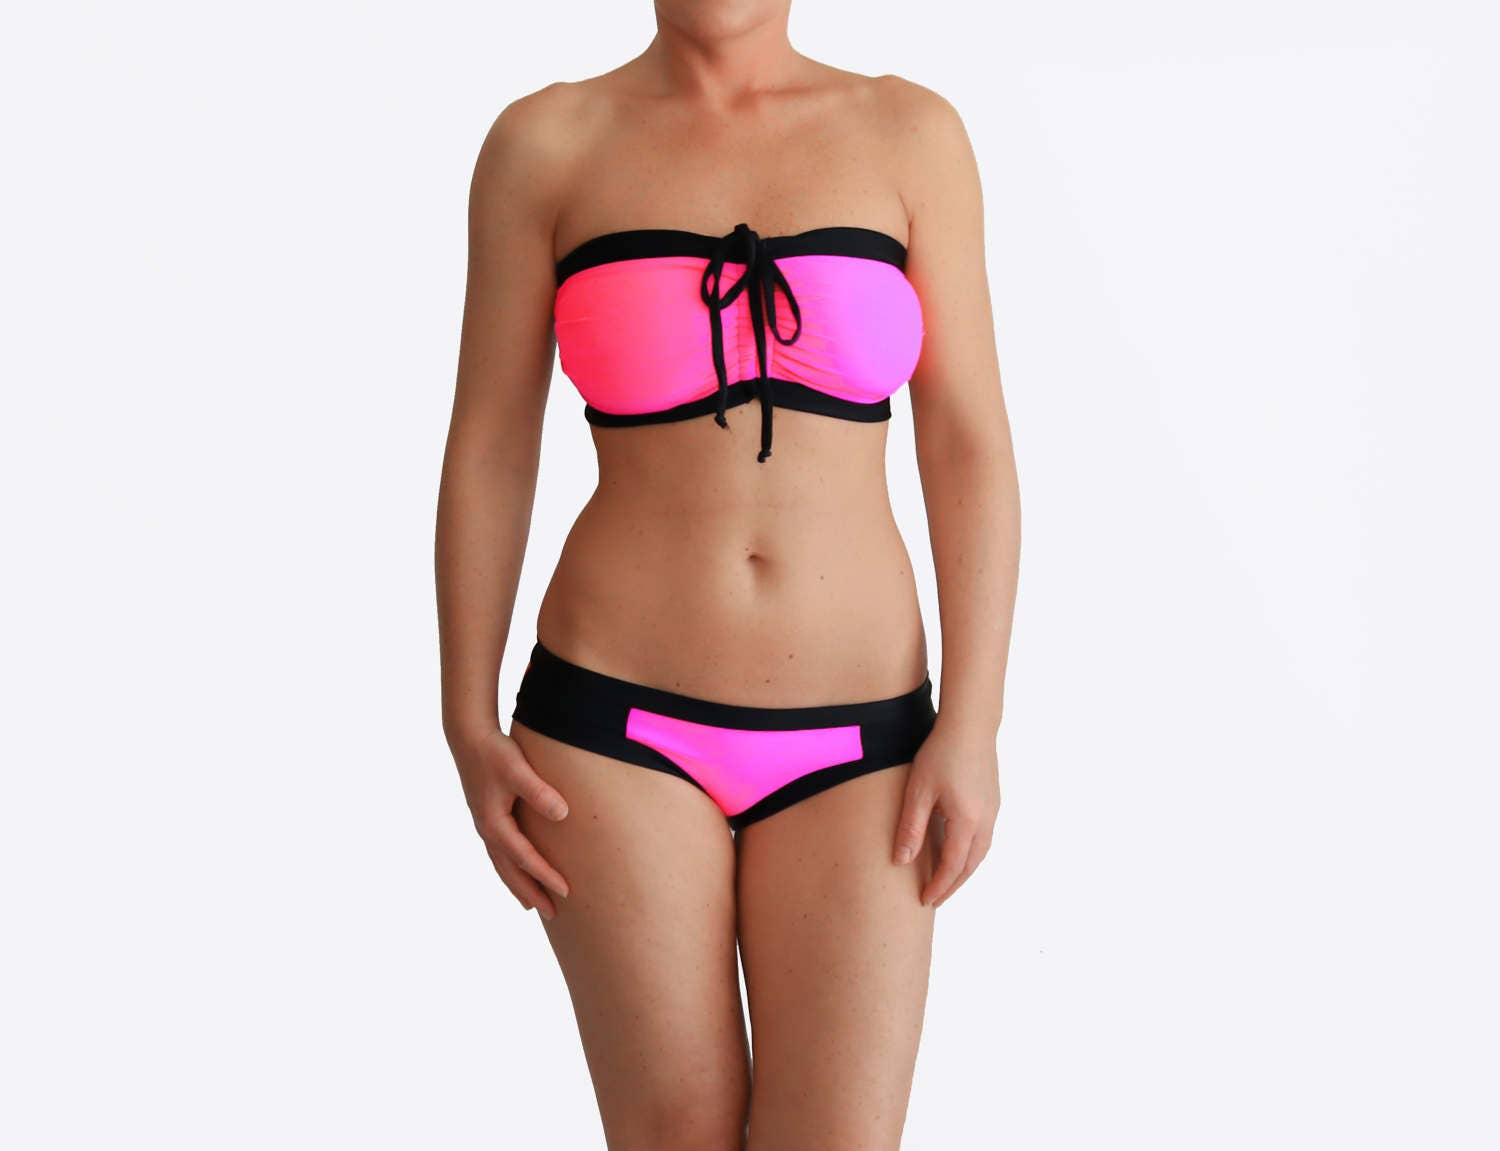 neon pink bikini best ddd swimsuit g cup bathing suit high. Black Bedroom Furniture Sets. Home Design Ideas